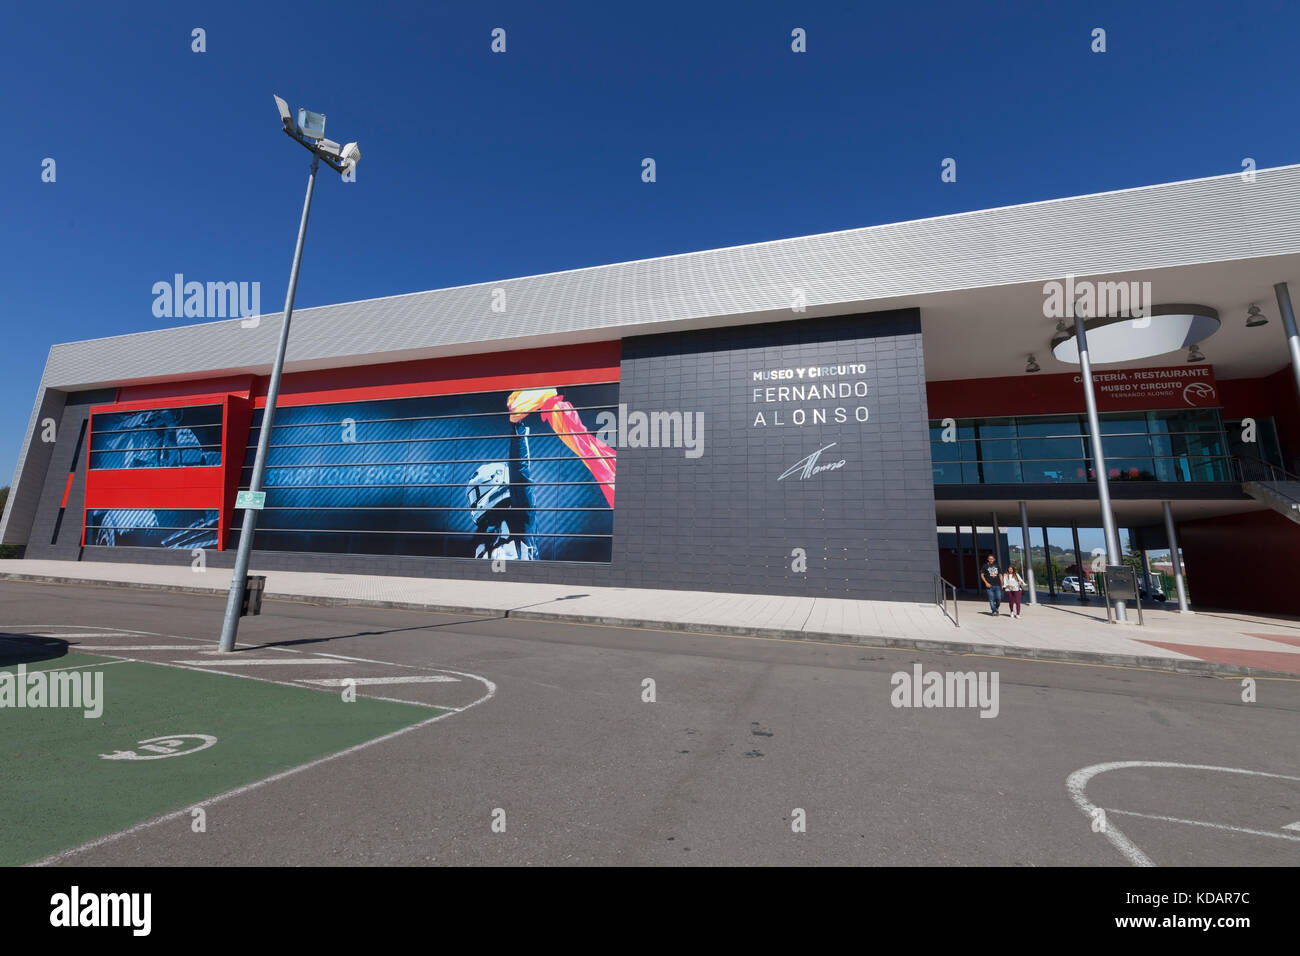 Circuito Karting : Fernando alonso karting circuit and museum in spain. photograph